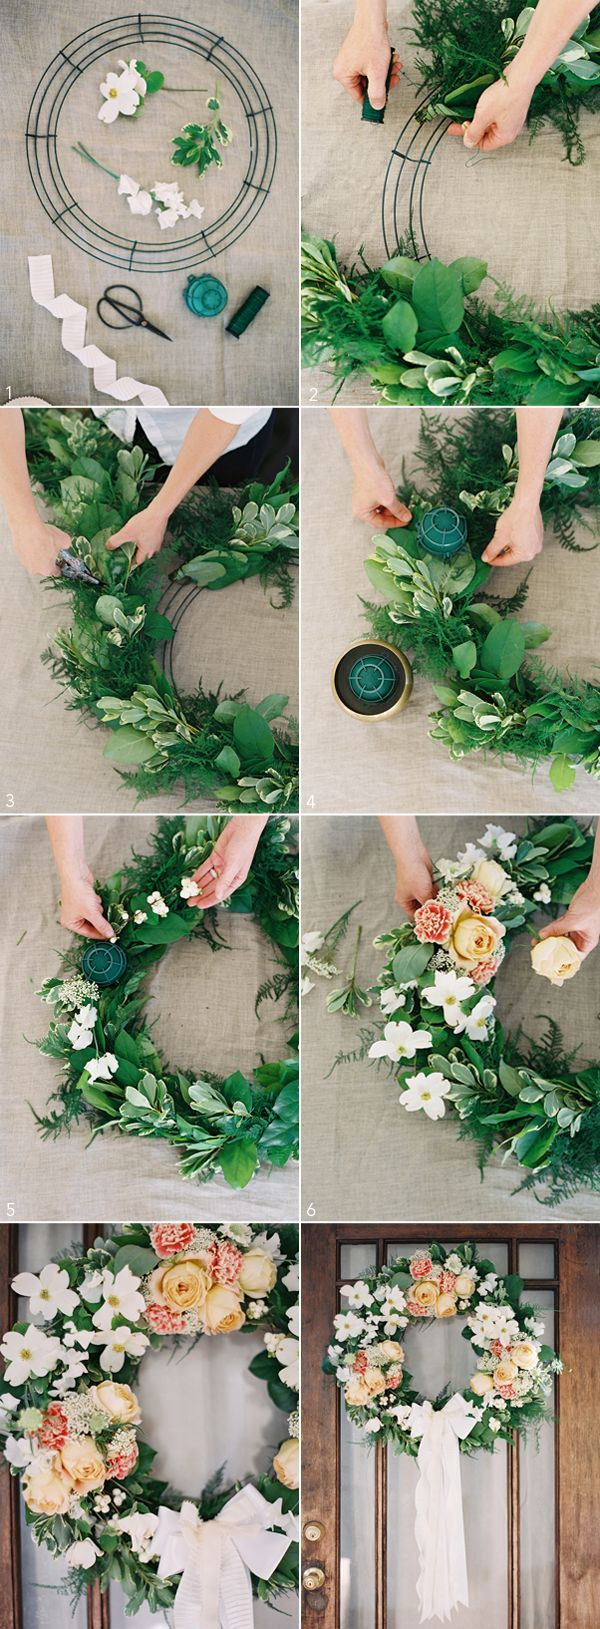 creative diy wedding ideas for spring spring wedding